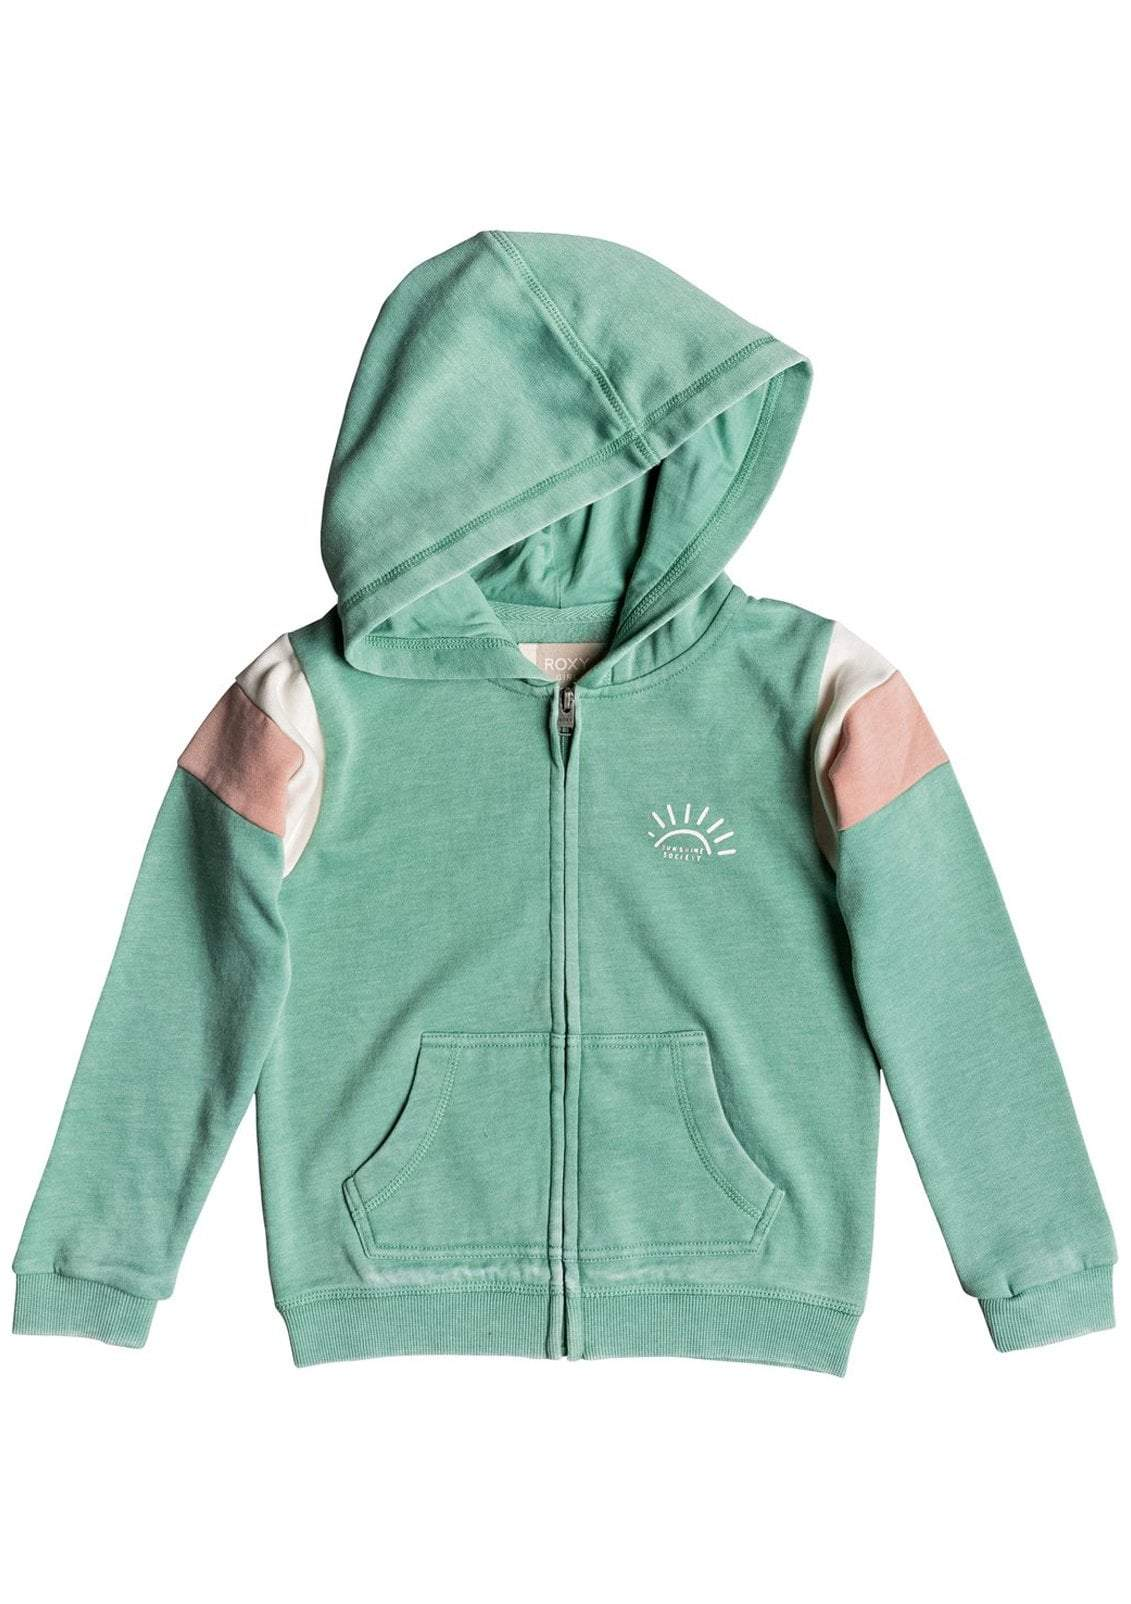 Little Girl's Beach In Hawaii Sunshine Society Zip-up Hoodie